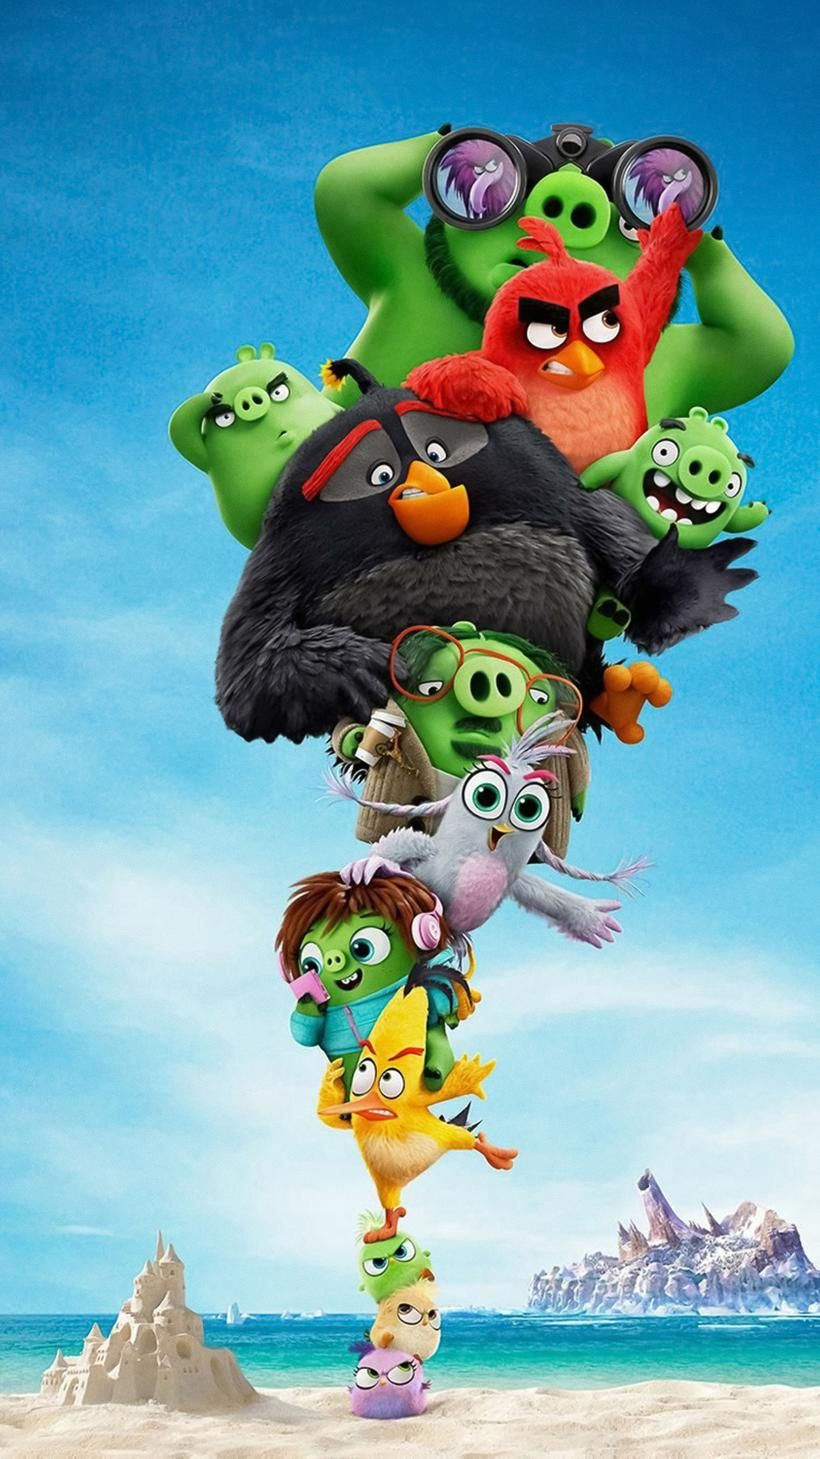 Moviemania Textless High Resolution Movie Wallpapers Angry Birds Movie Angry Birds Full Movies